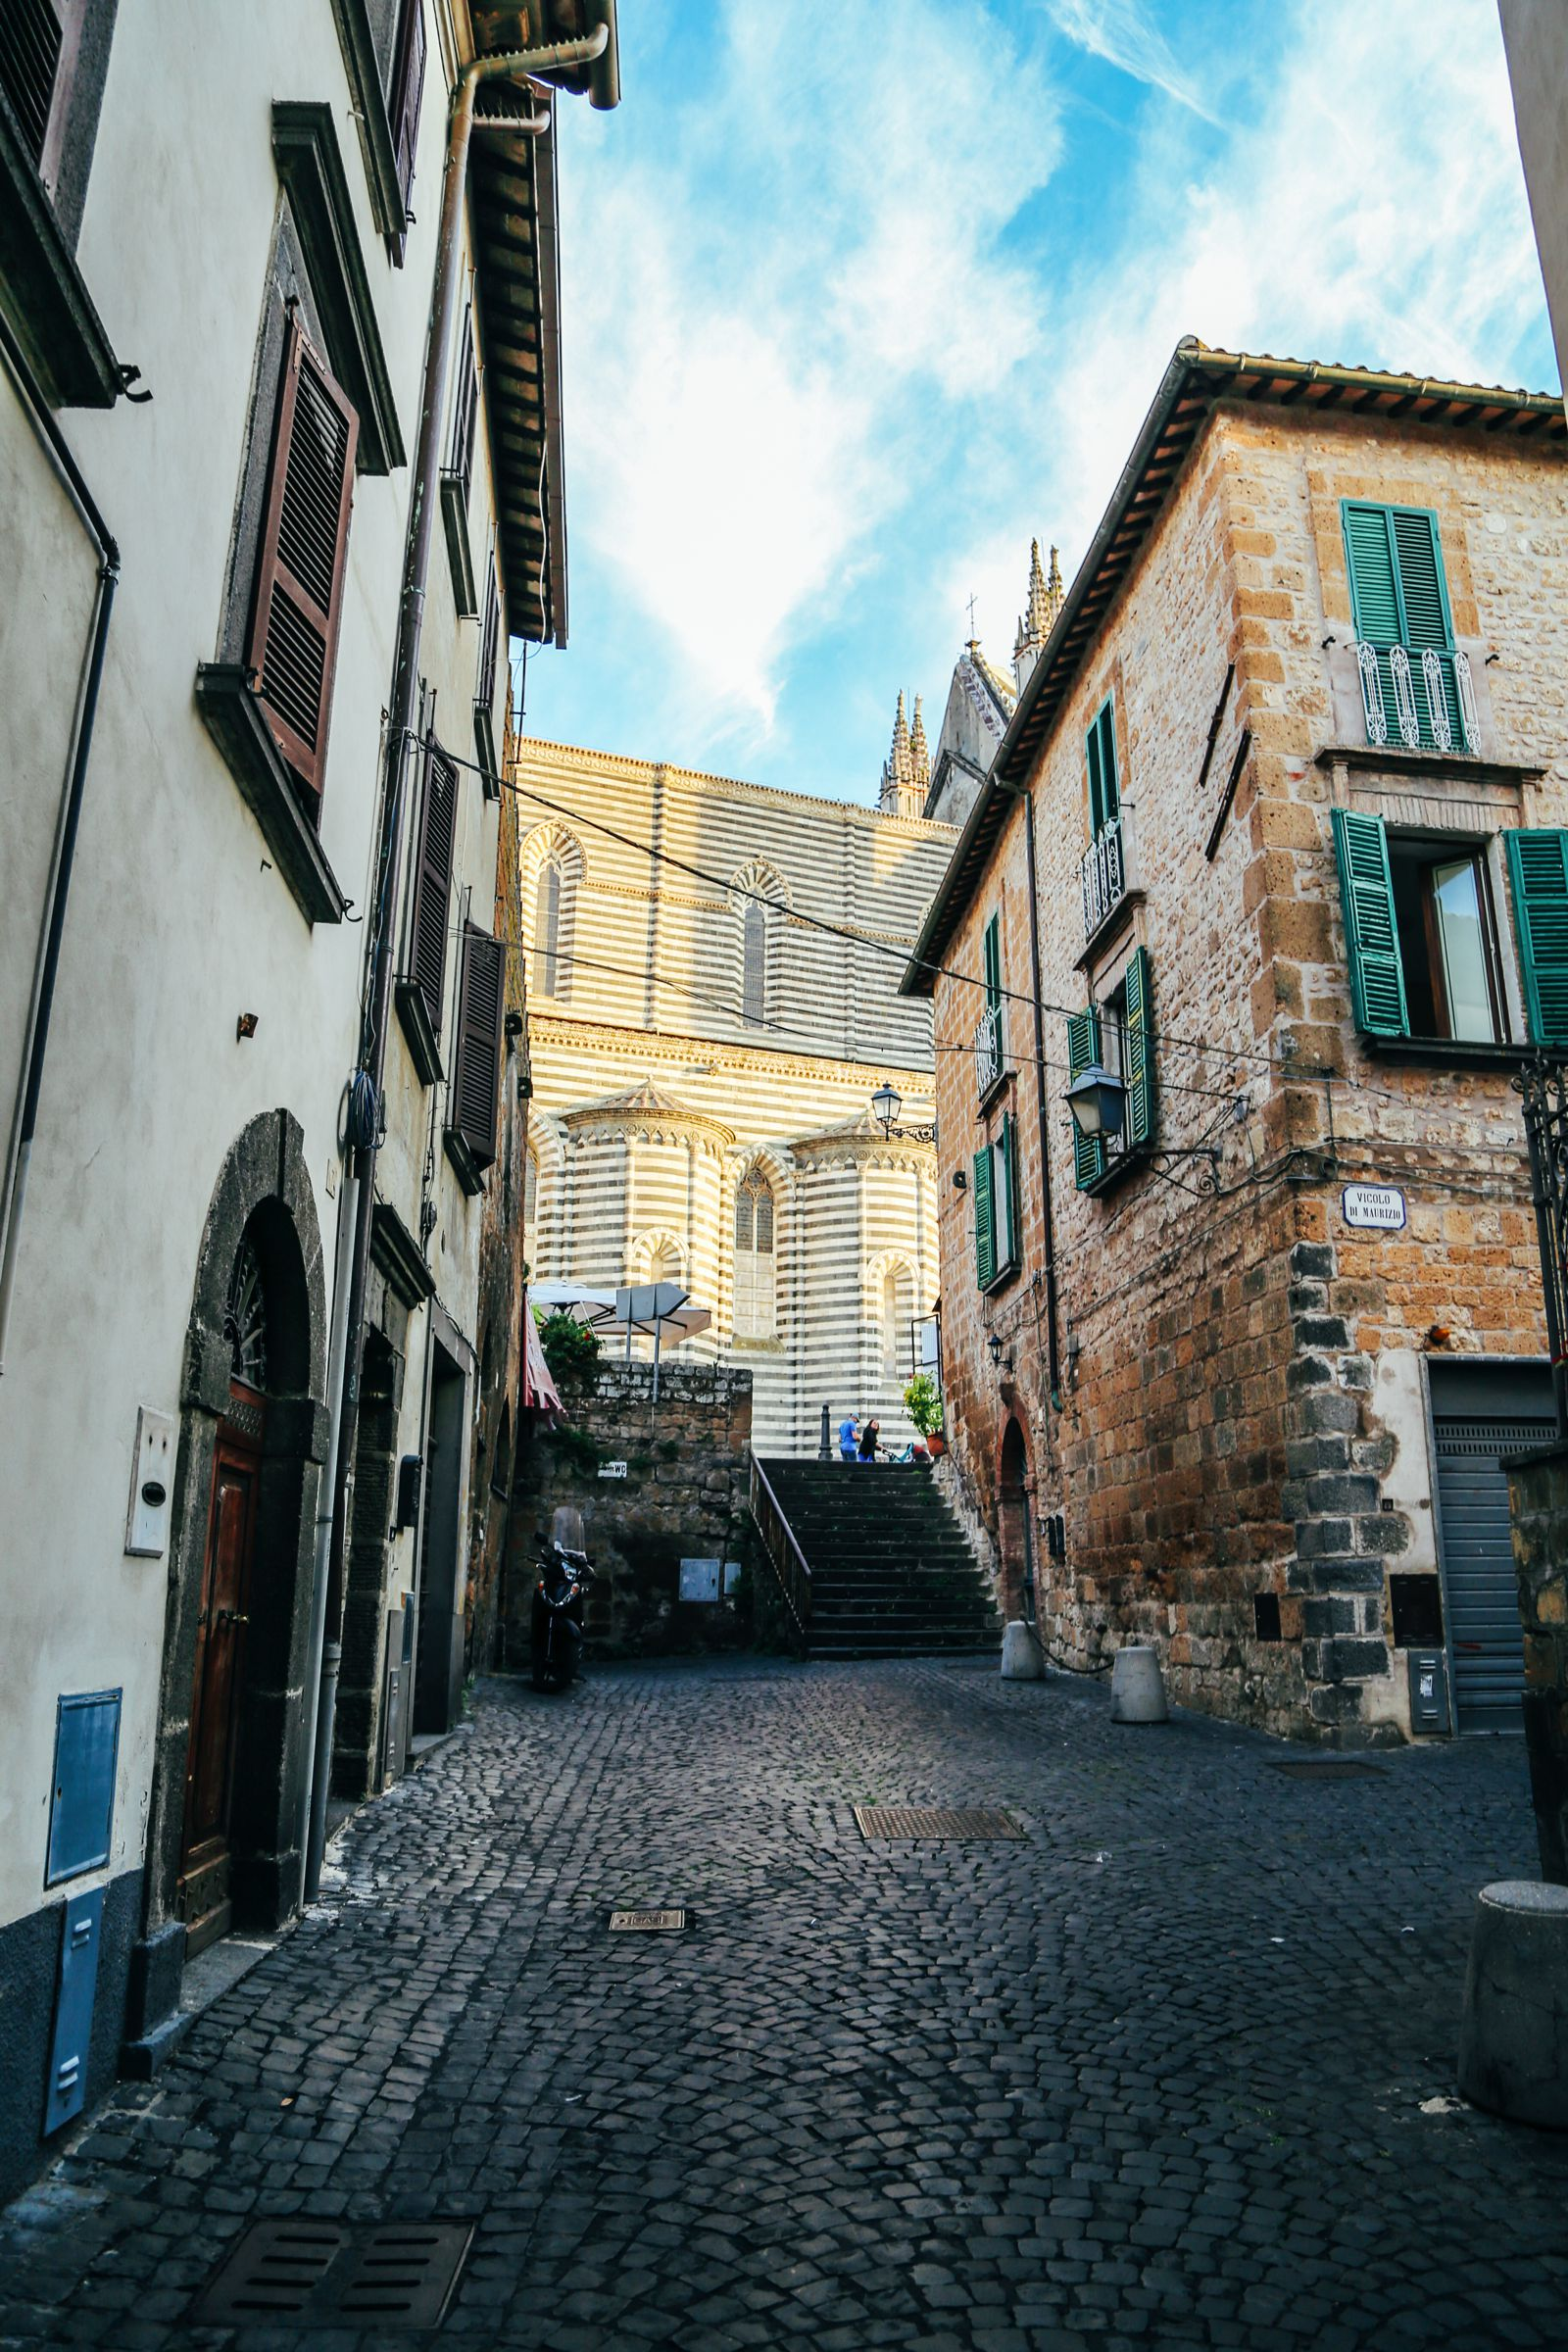 Orvieto - The Most Dramatic City In Europe (1)